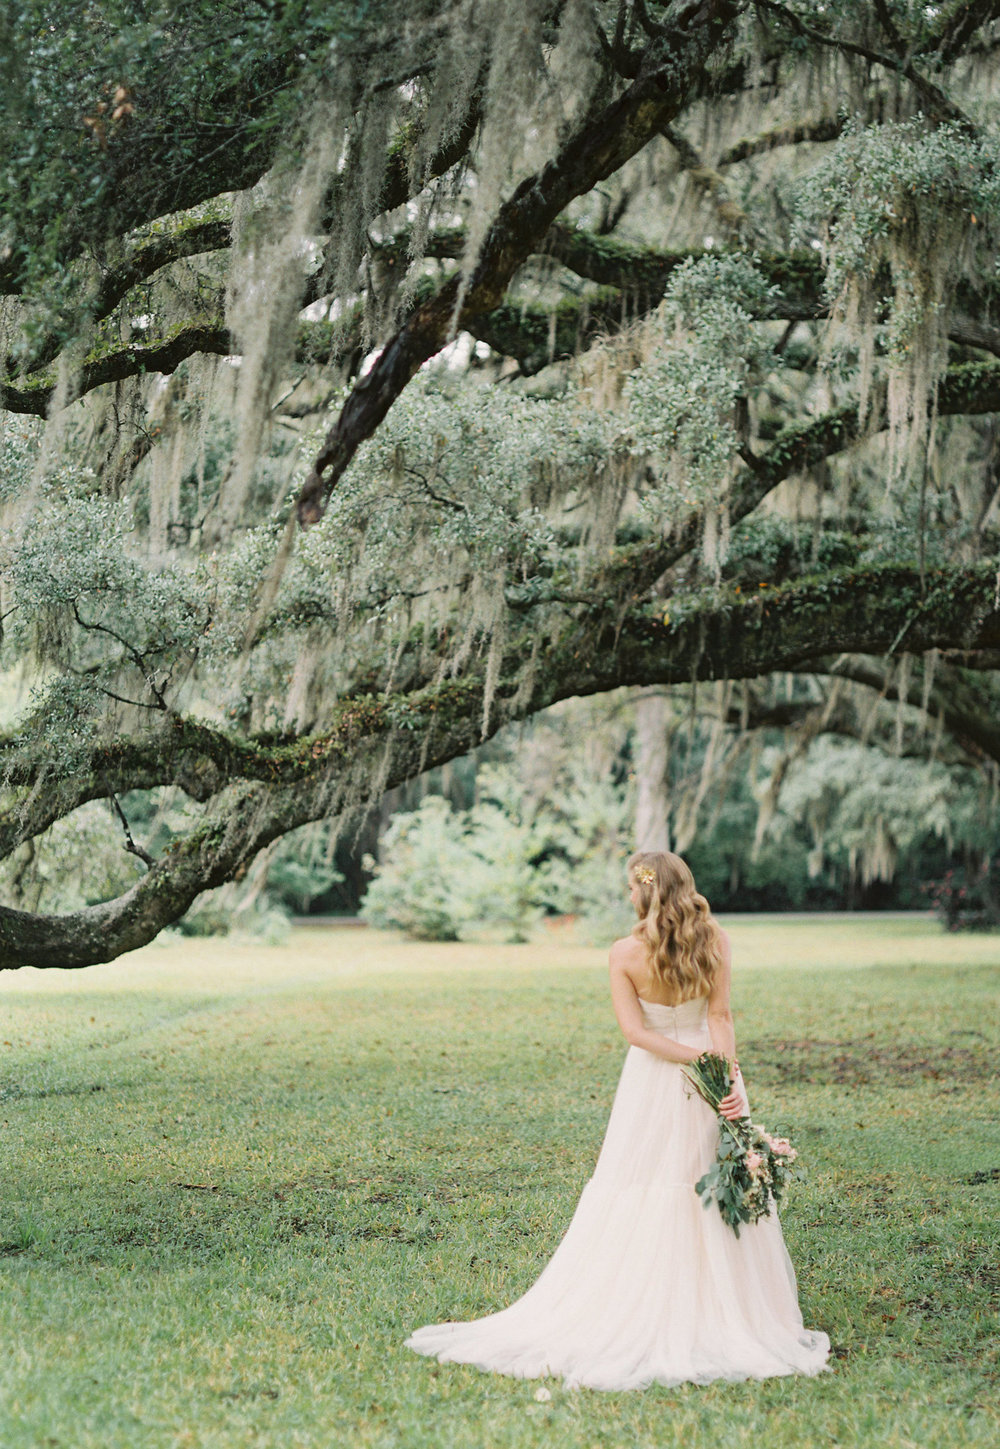 Mirror+Mirror-Hair-magnolia-plantation-0002.jpg